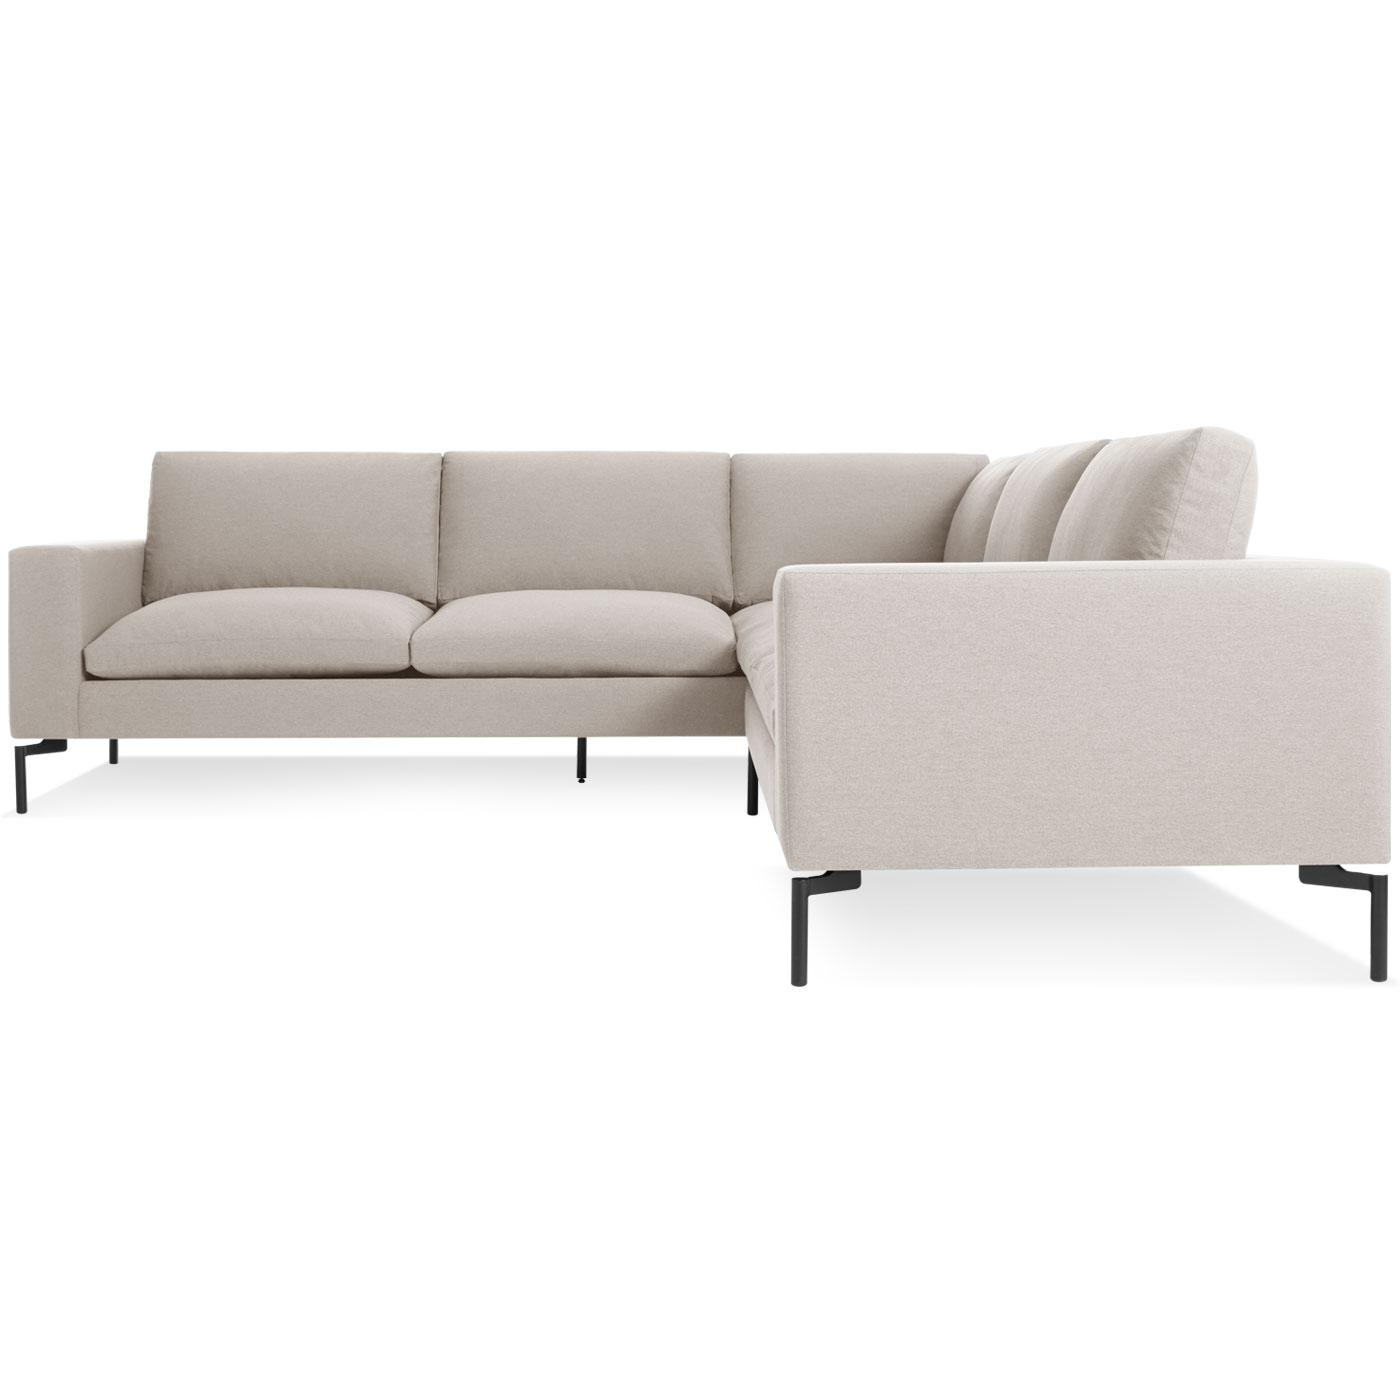 New Standard Small Sectional Sofa – Modern Sofas | Blu Dot Pertaining To Small Modern Sofas (Image 14 of 20)